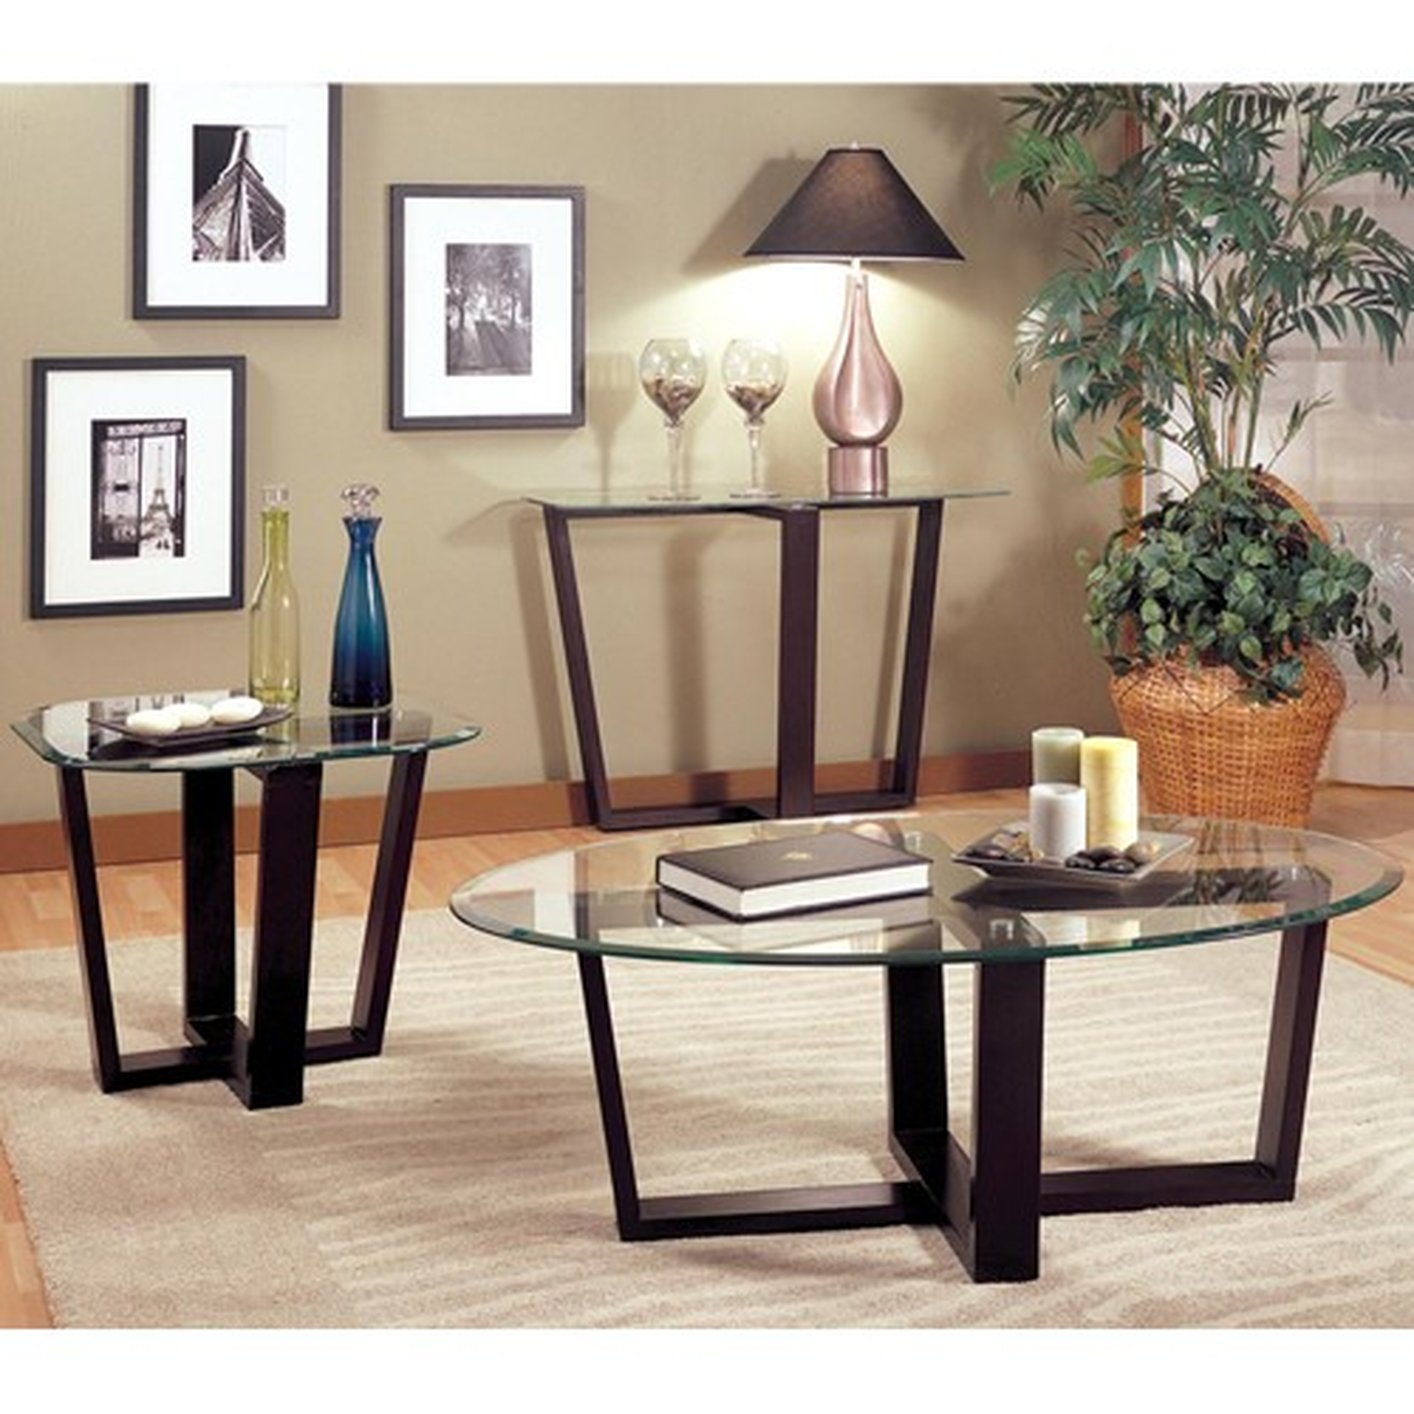 Alexis Black Glass Coffee Table Set Steal A Sofa Furniture